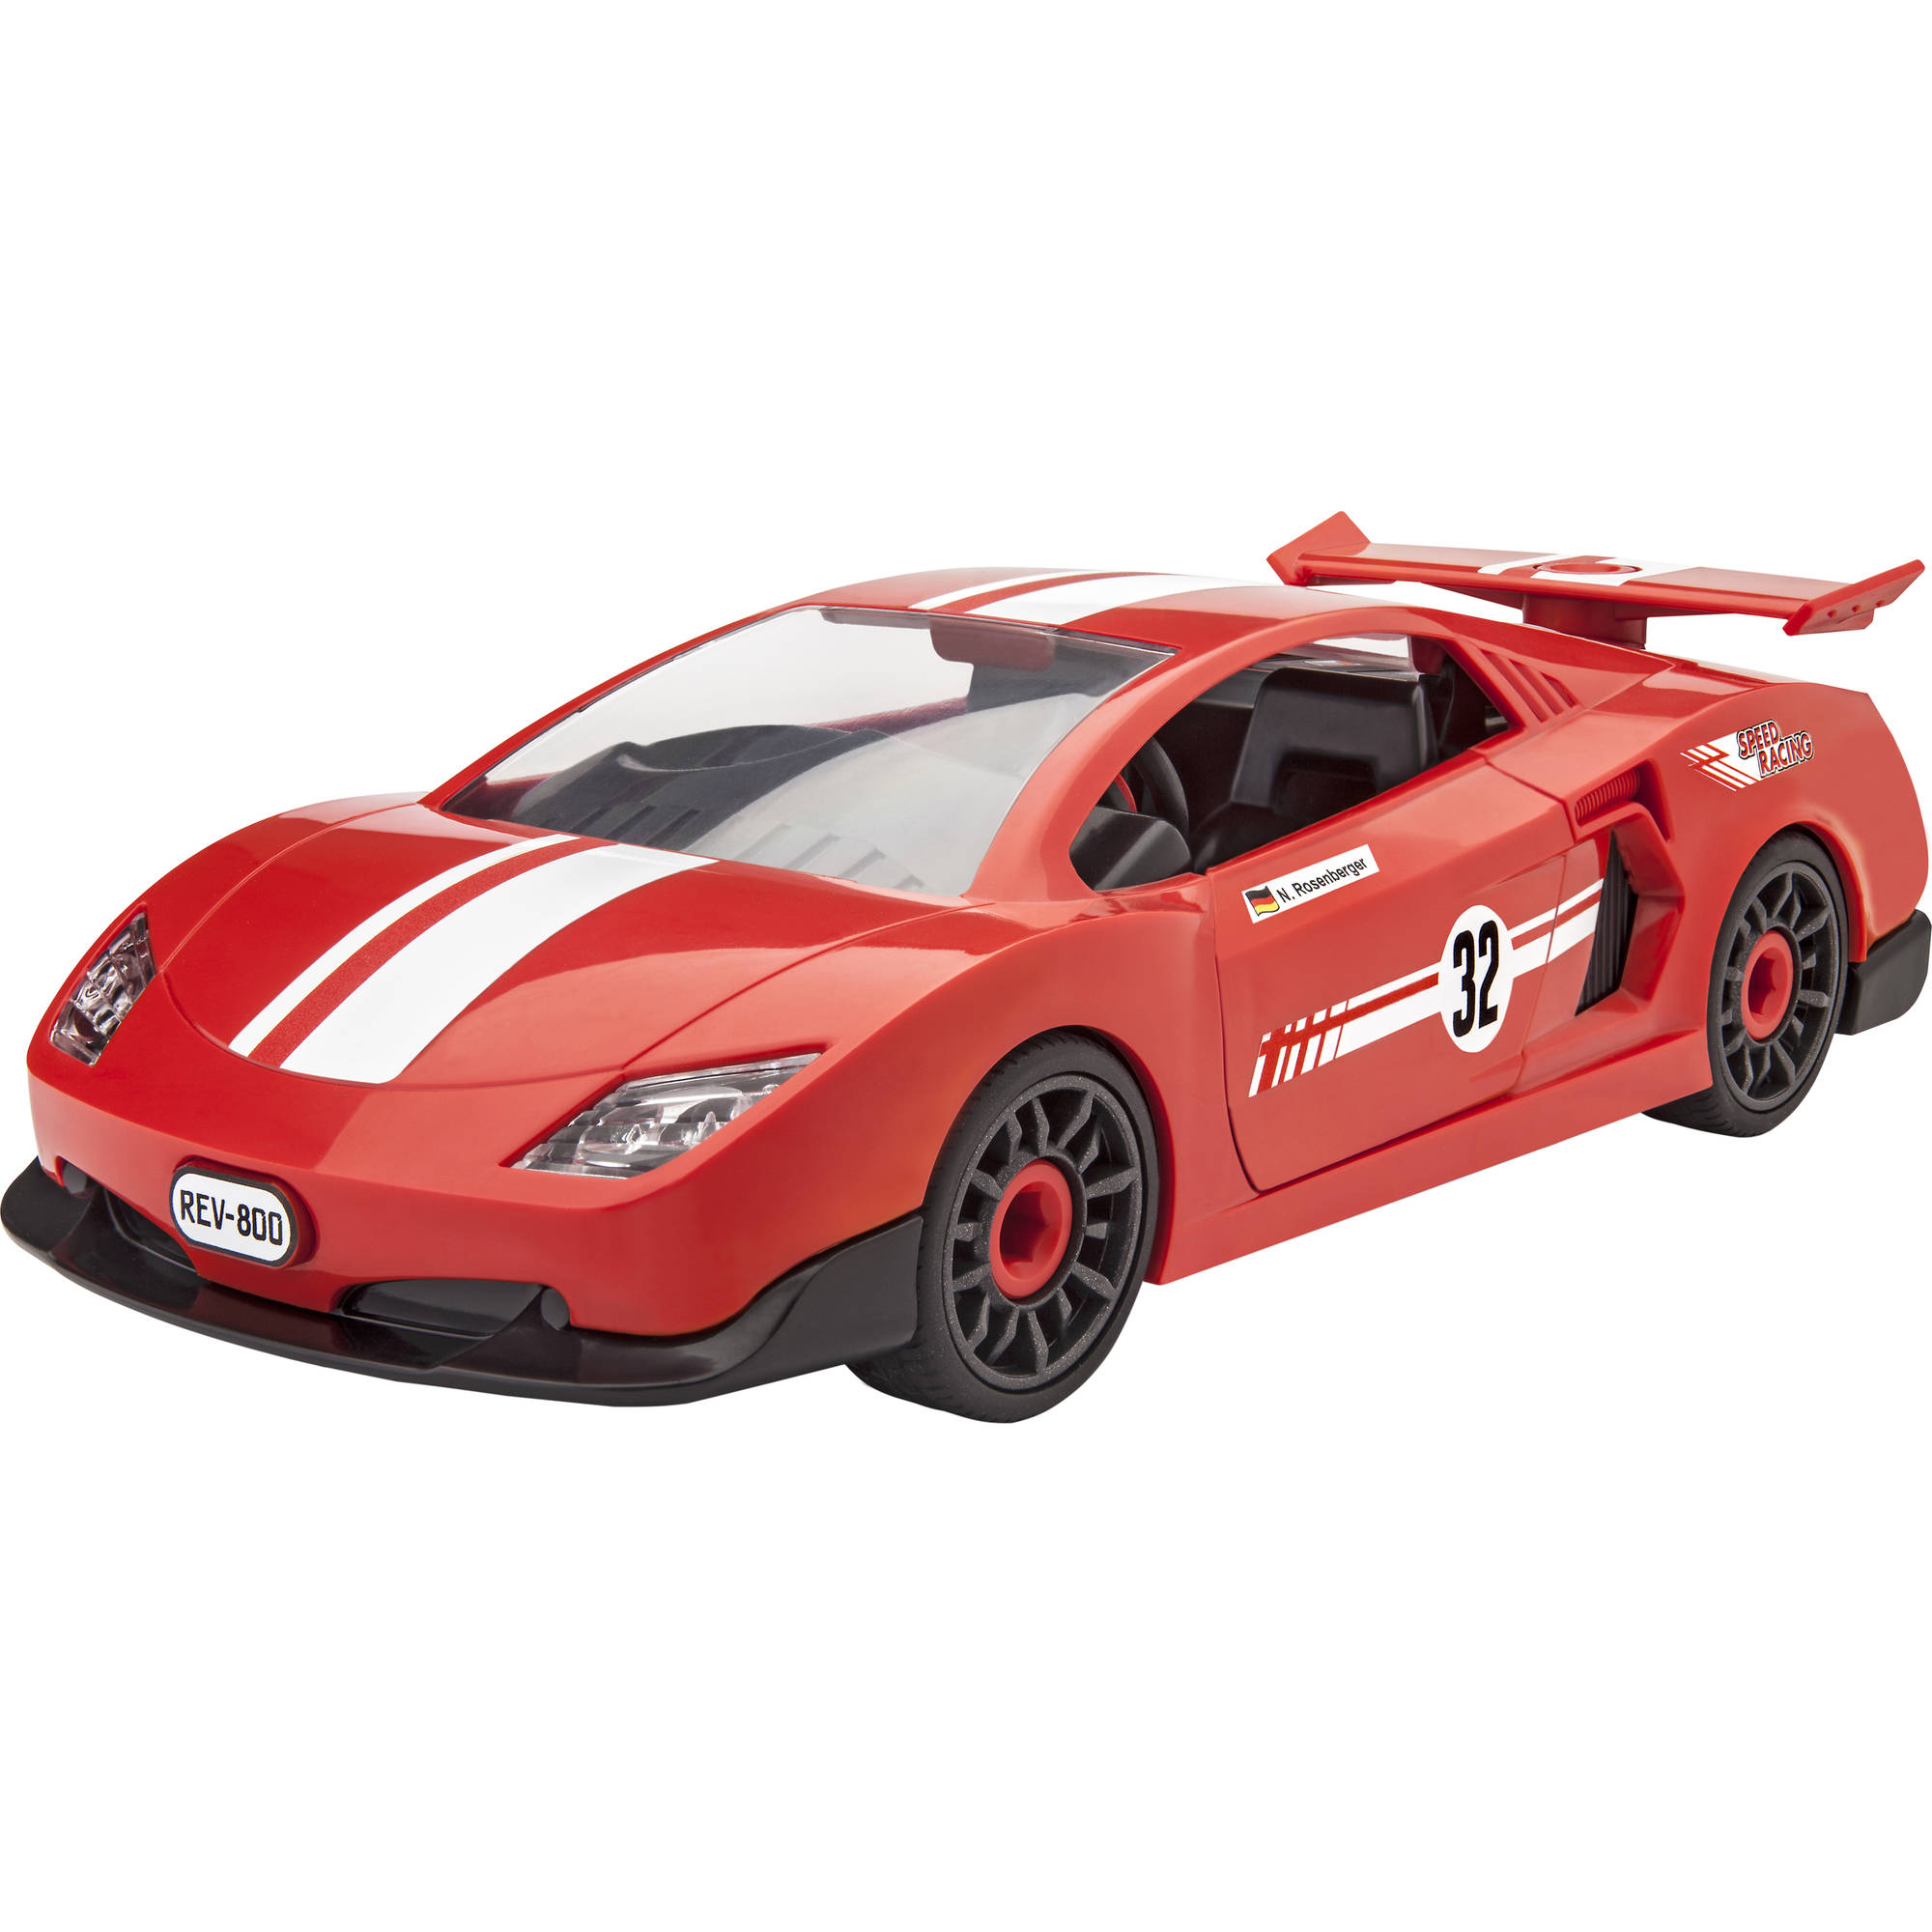 Revell Junior Kit Race Car Plastic Model Kit by Revell